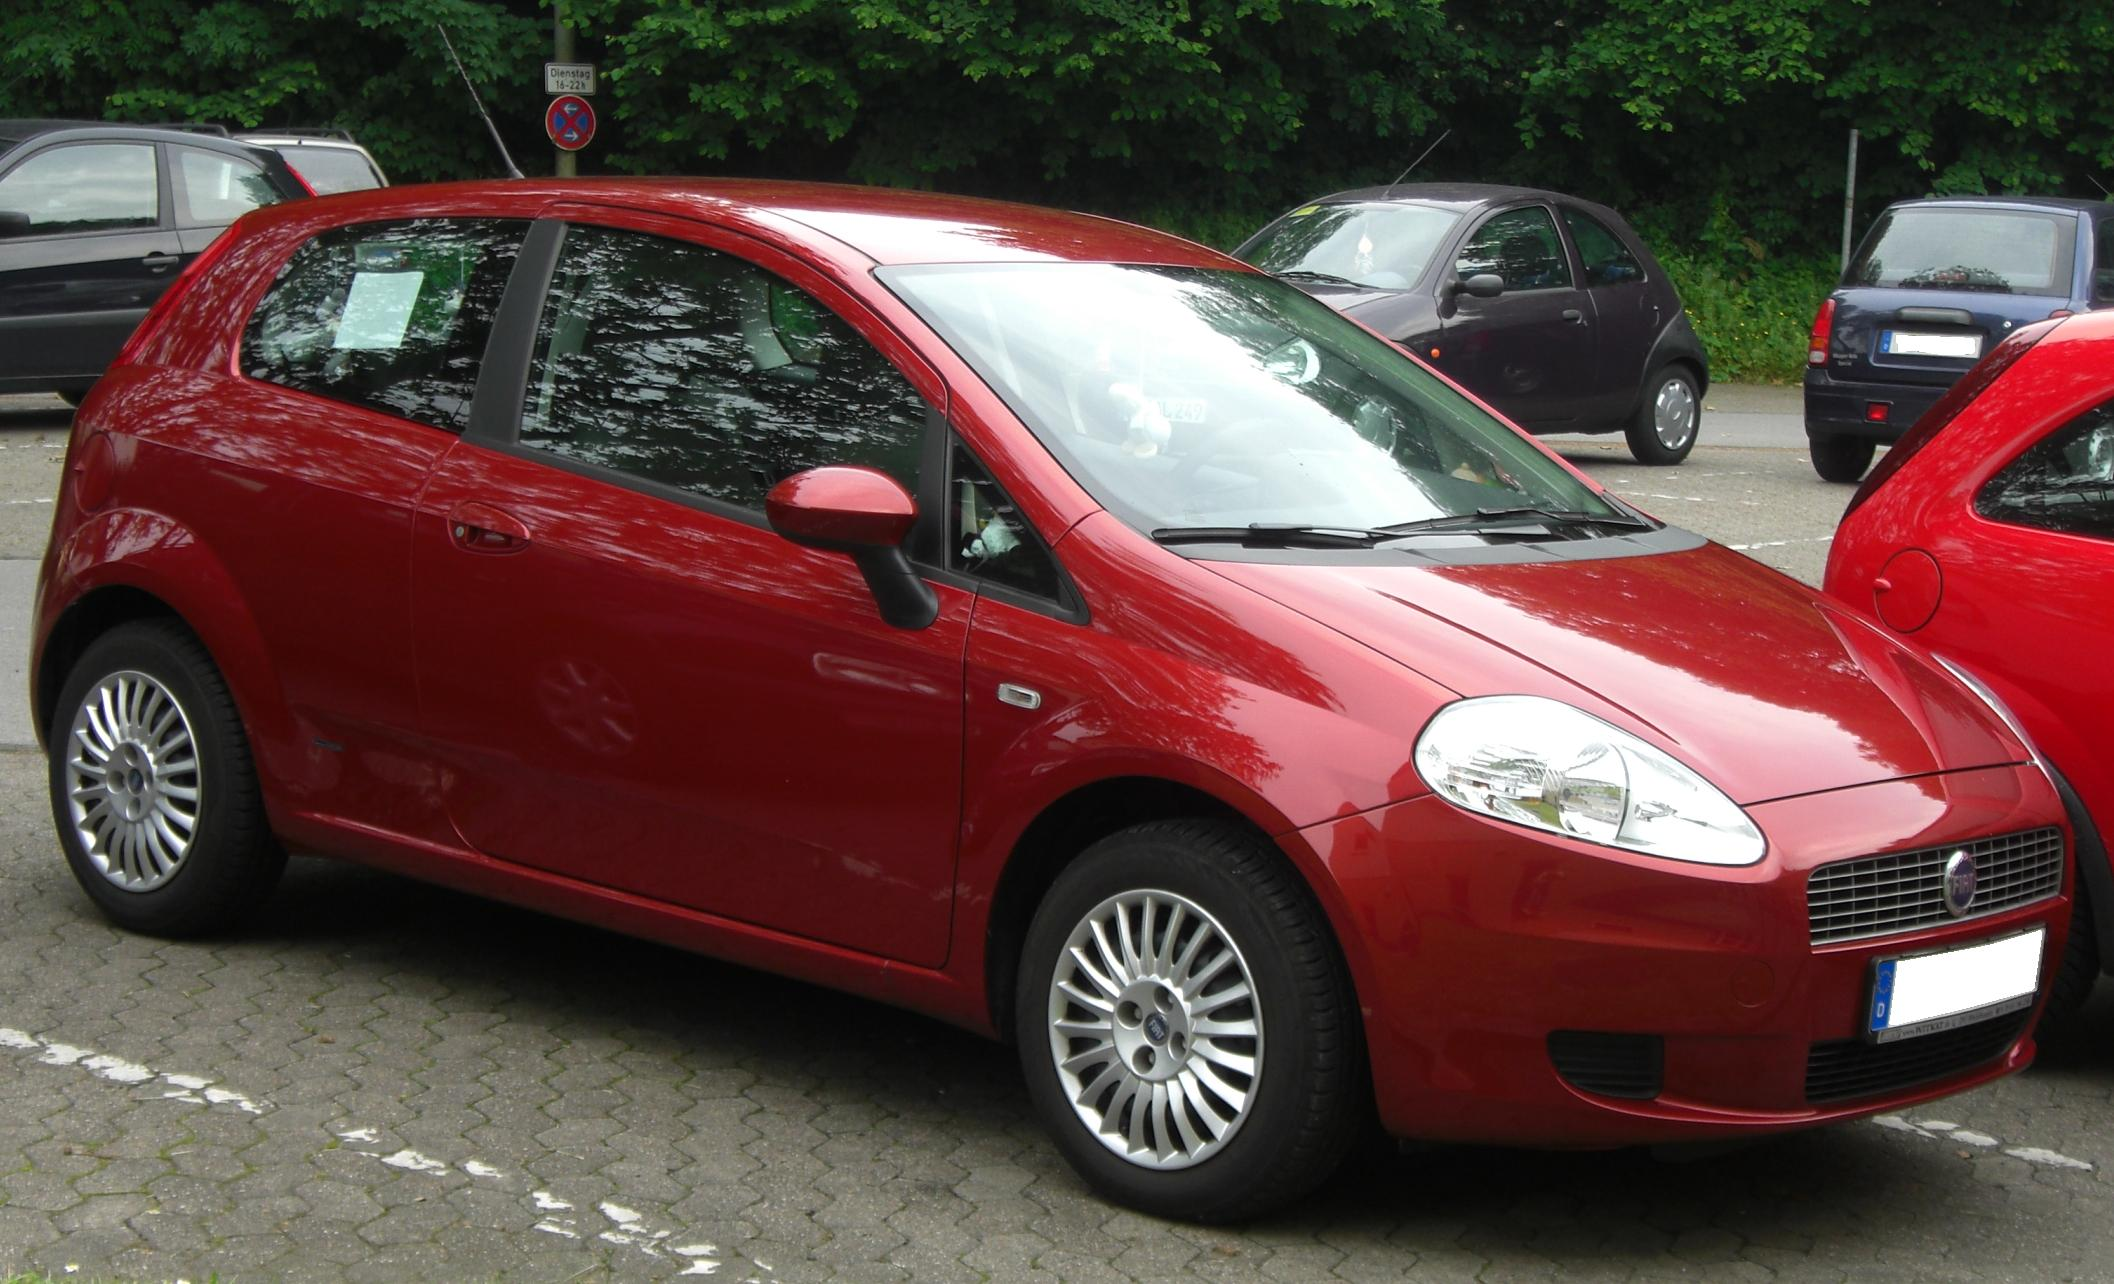 File:Fiat Grande Punto front.jpg - Wikipedia, the free encyclopedia